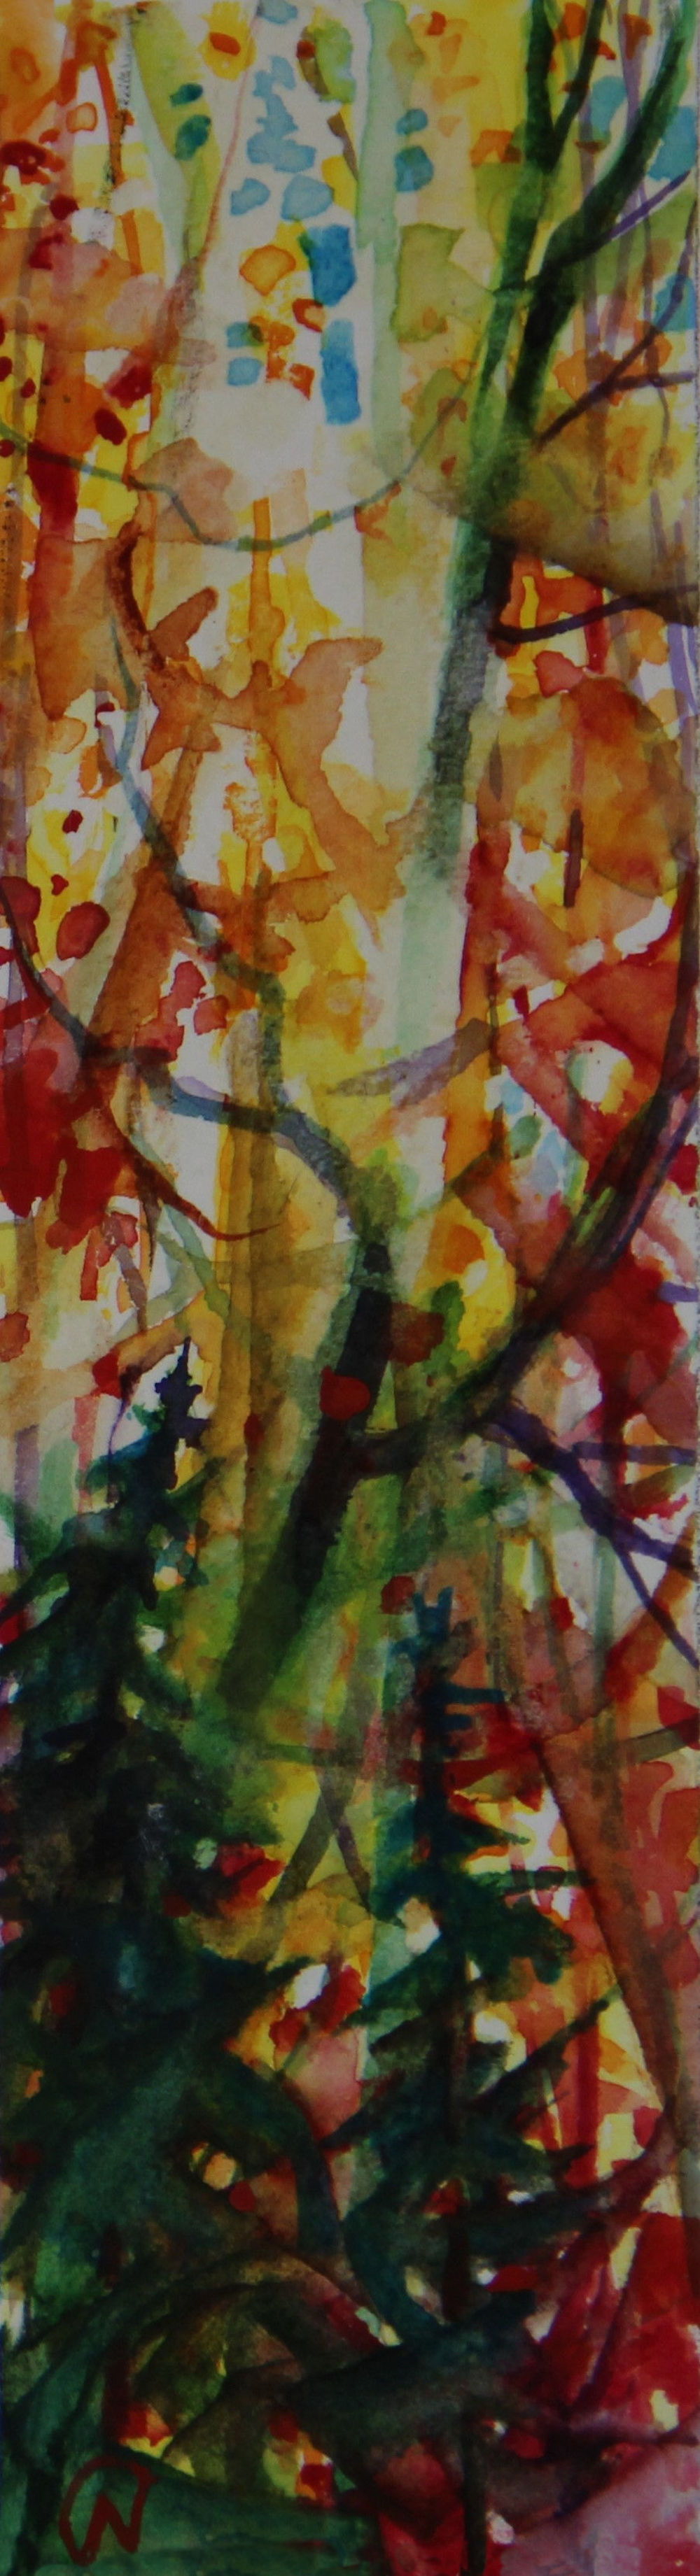 Autumn Forest Scene 06, about 6H x 2W inches watercolors on 140 lb cold pressed